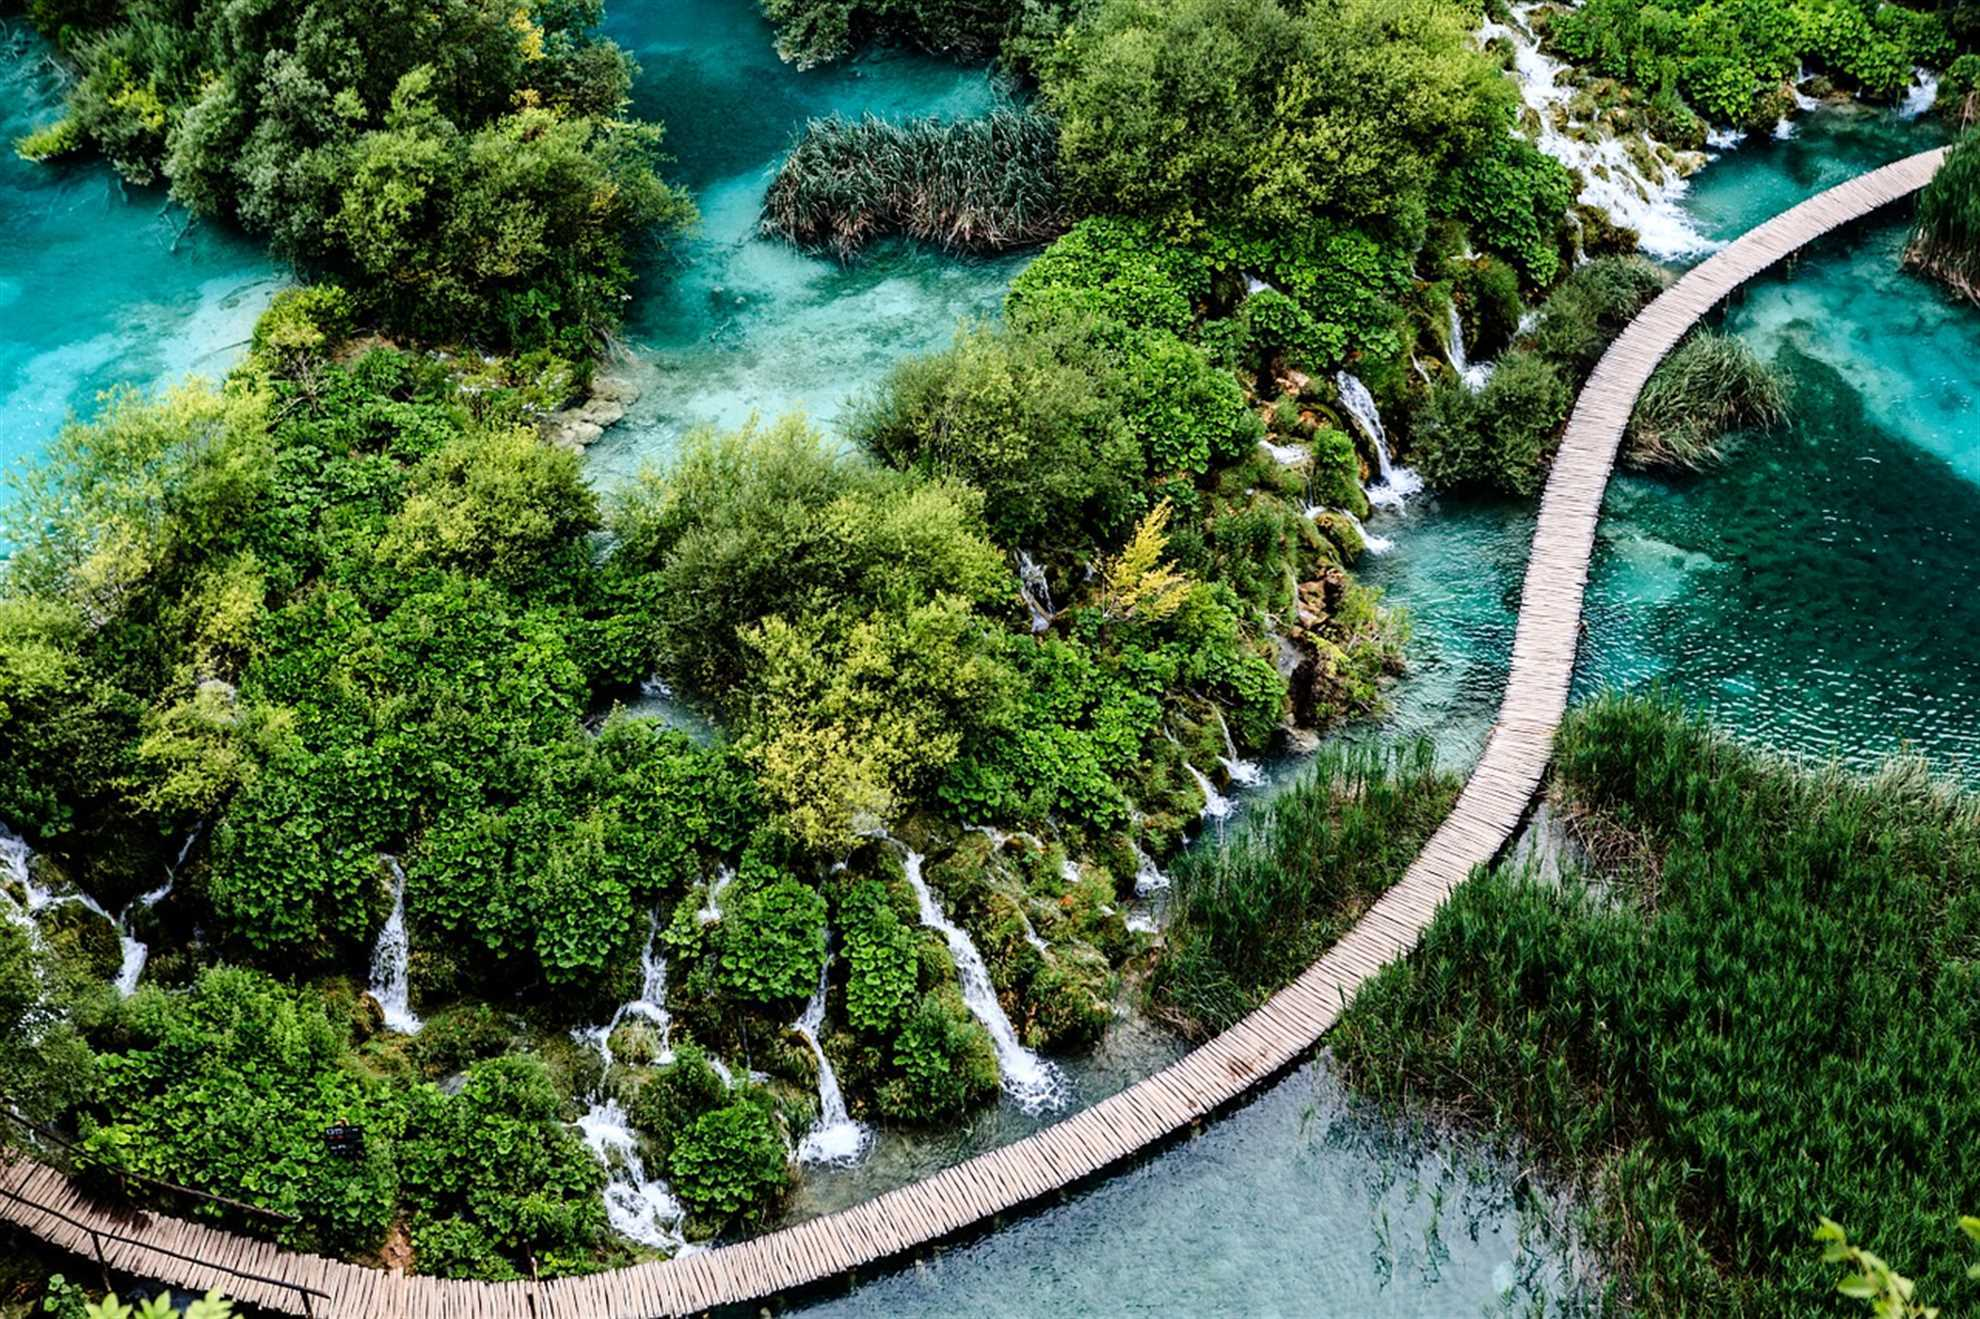 Plitvice Lakes Croatian national Park